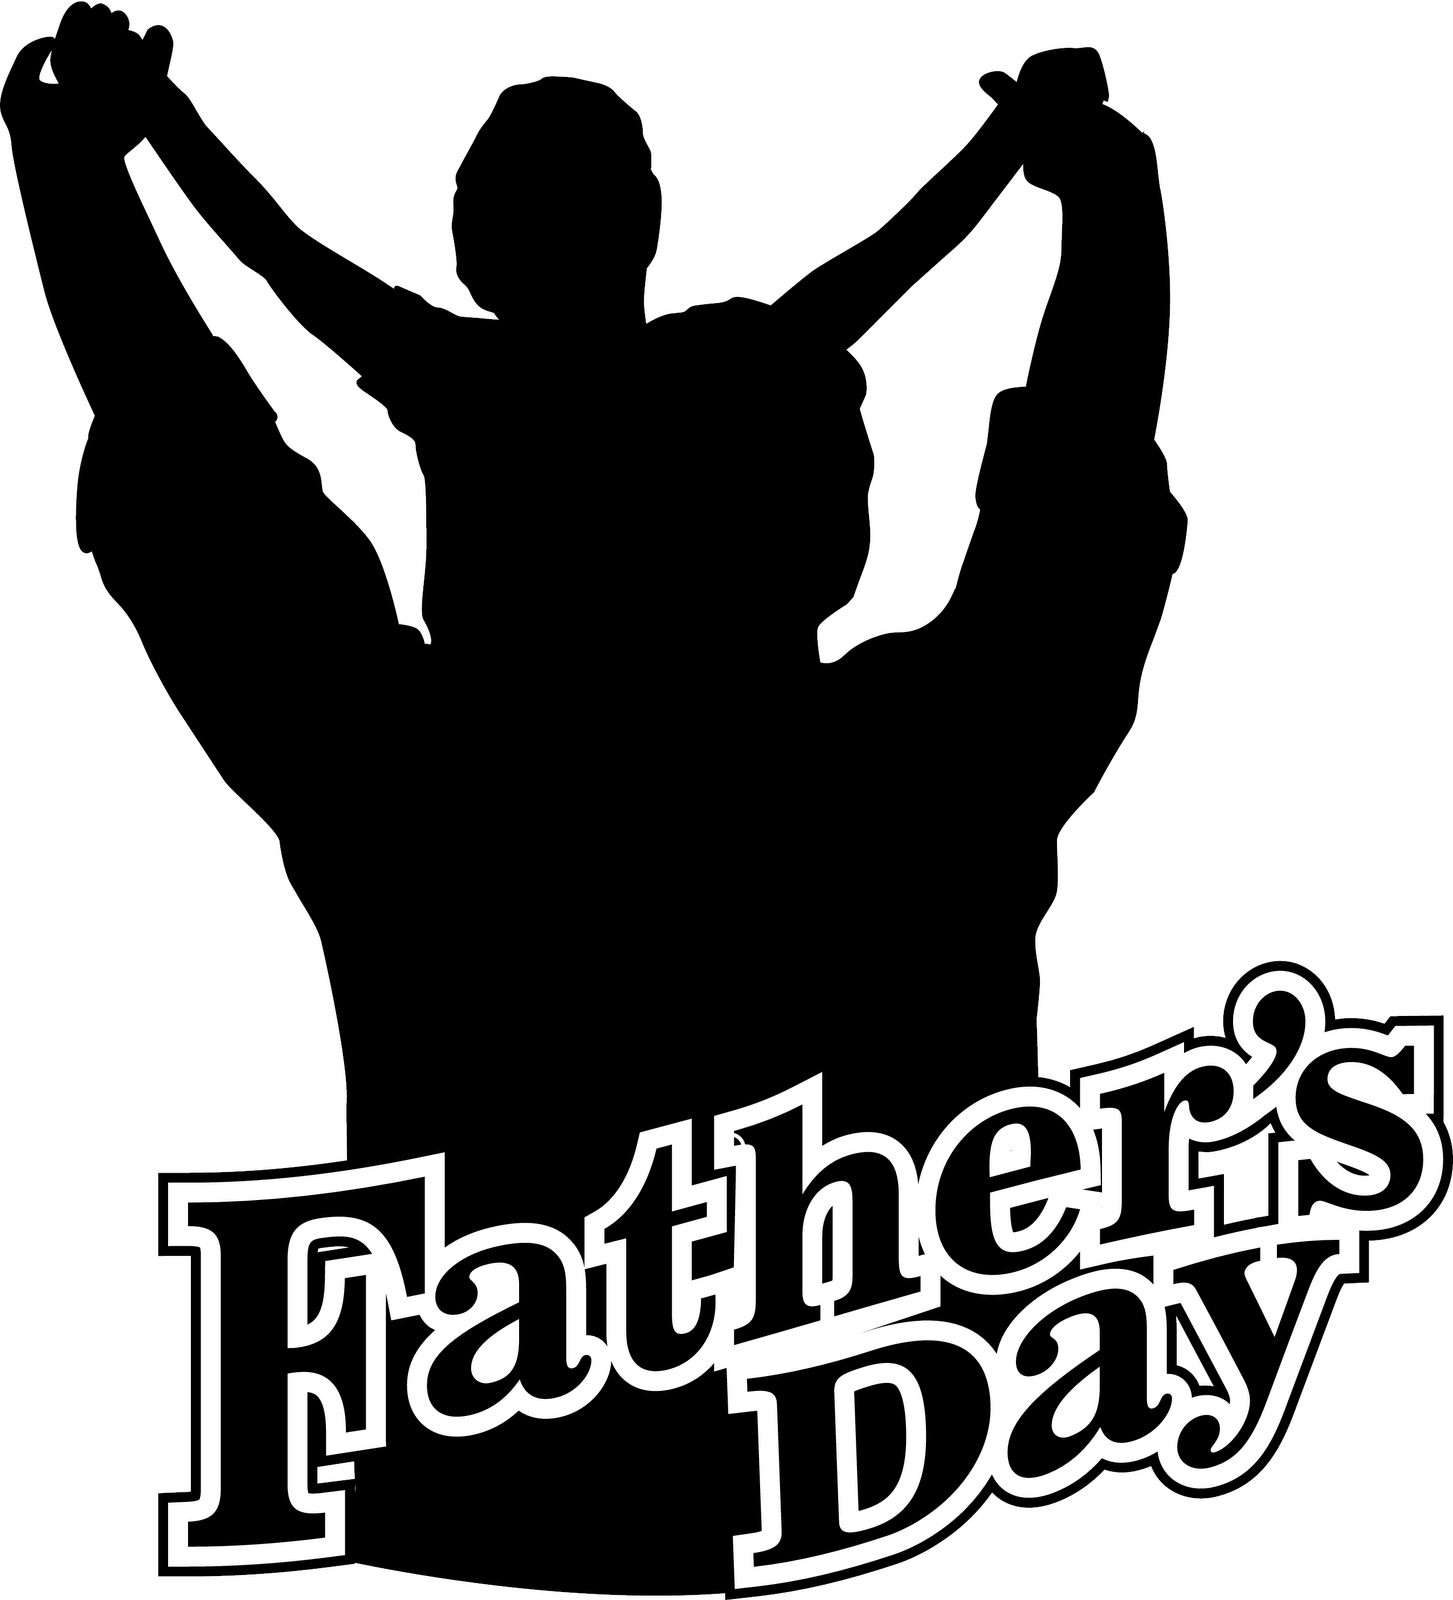 Happy Fathers Day Donut Clipart.